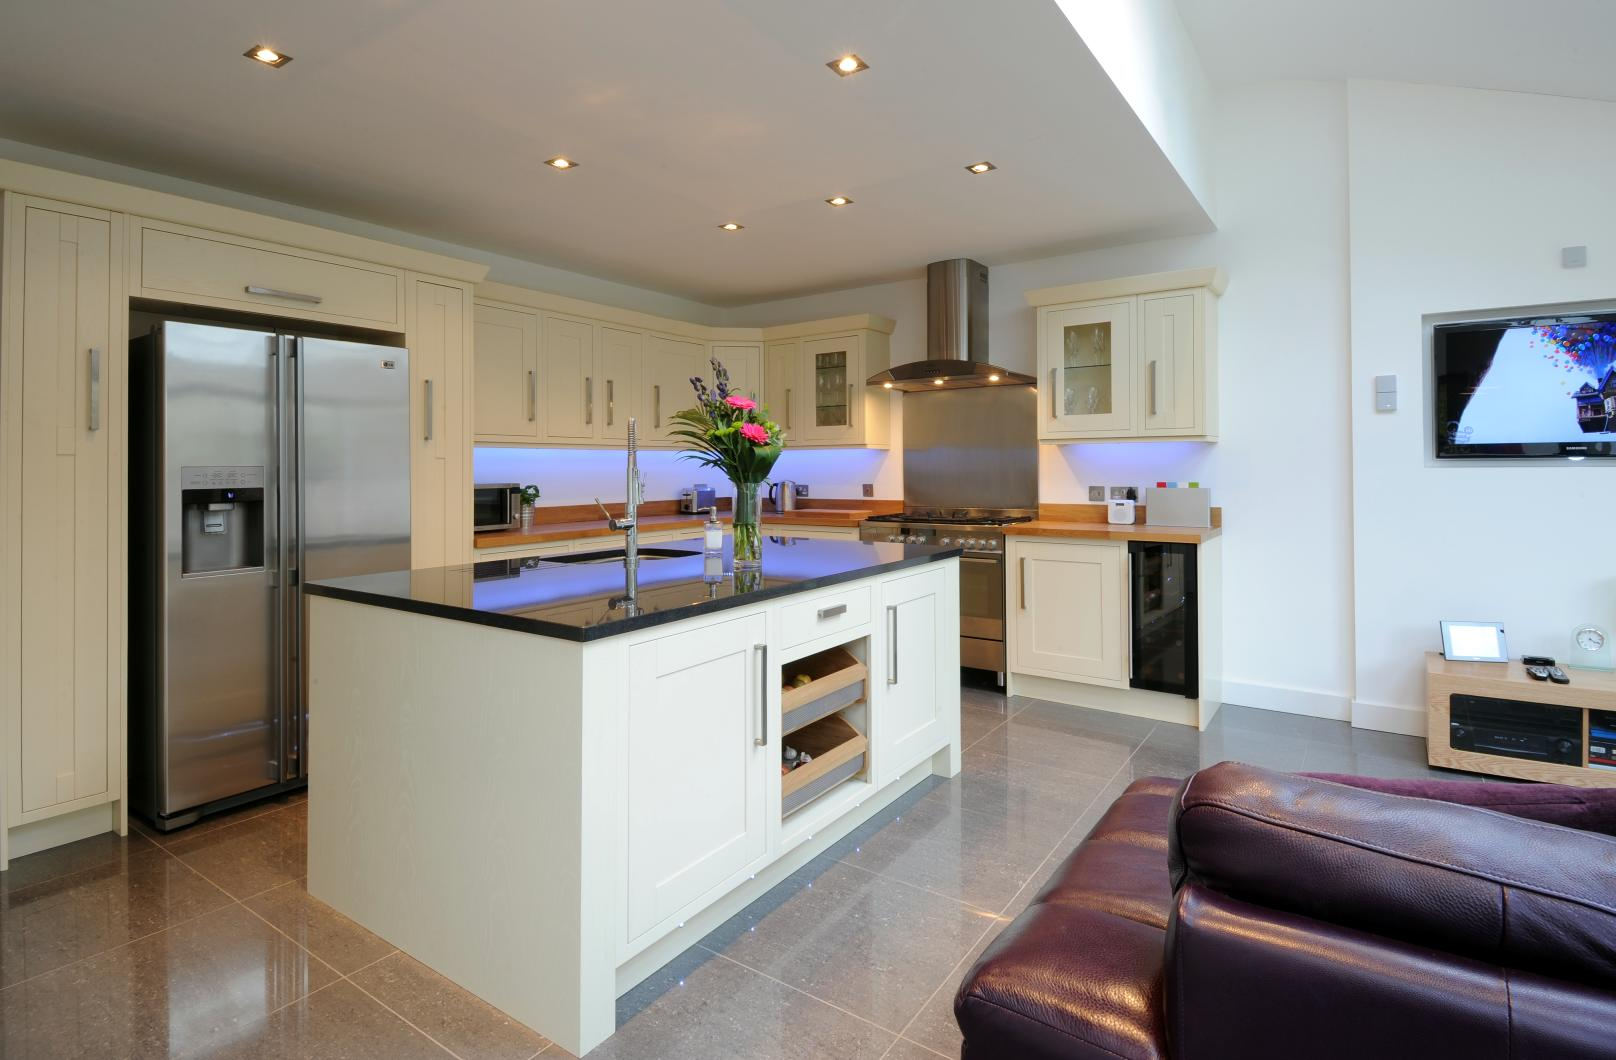 hannah barnes interior designs kitchen design callerton kitchens kitchens by design bristol